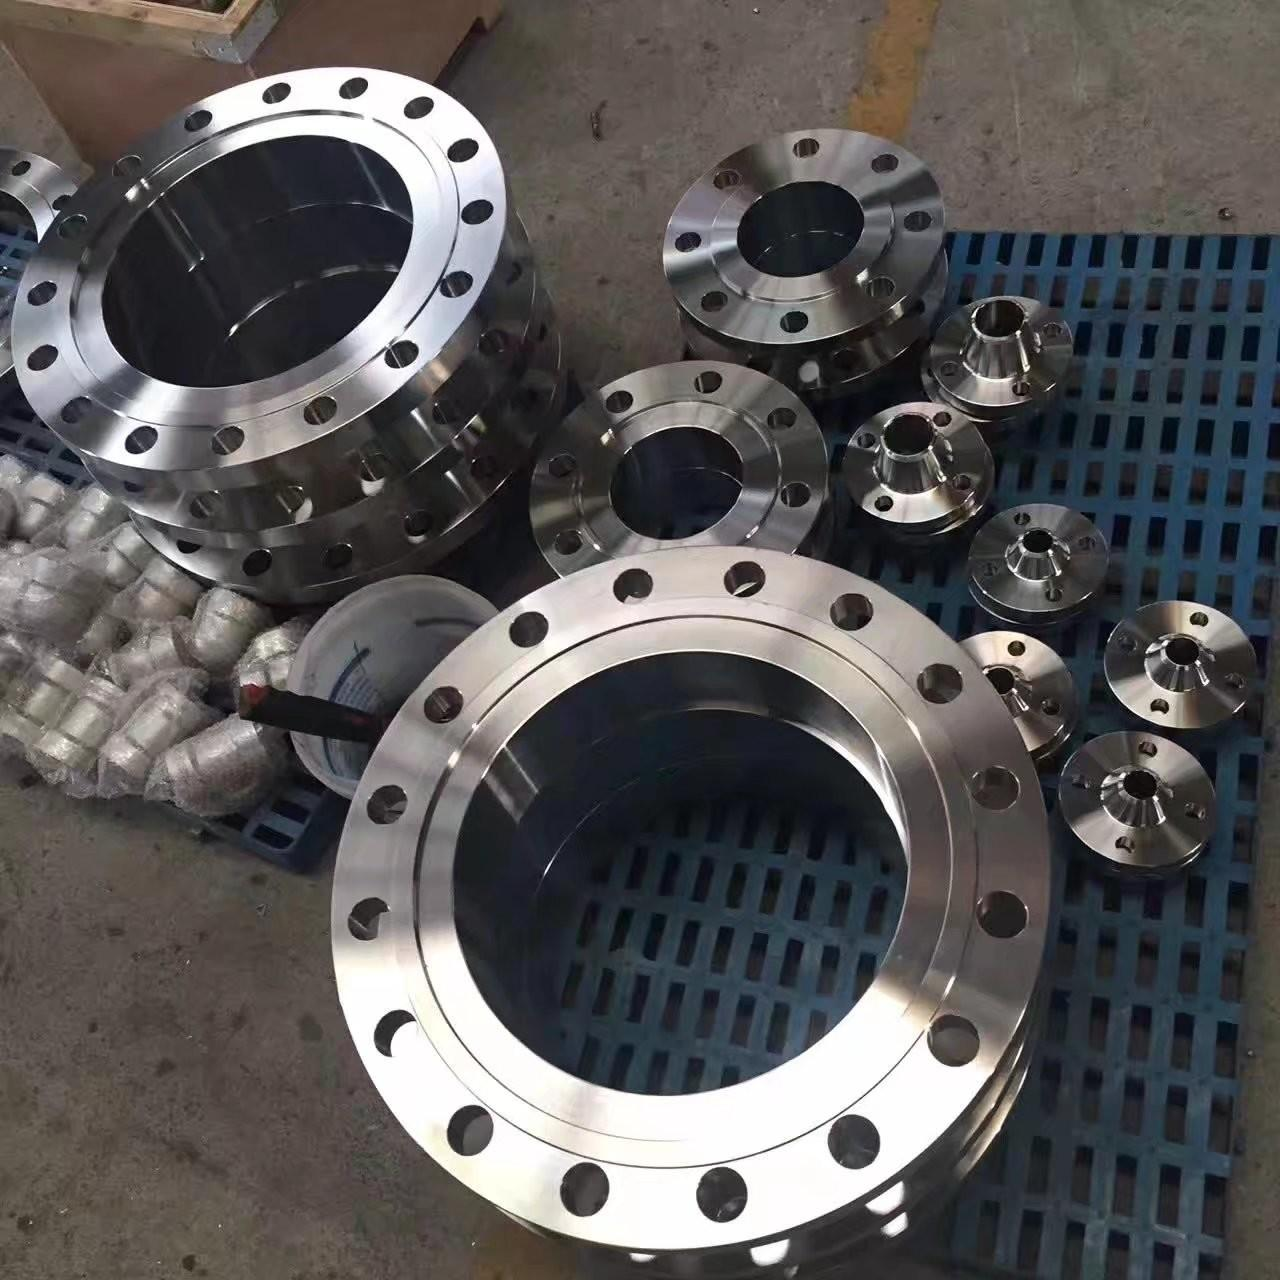 ASME B16.47 Flat Face Weld Neck Flange , Long Weld Neck Flange 300lbs Pressure  Ameriforge/Coffer/Texas Metals (USA), Manufactures